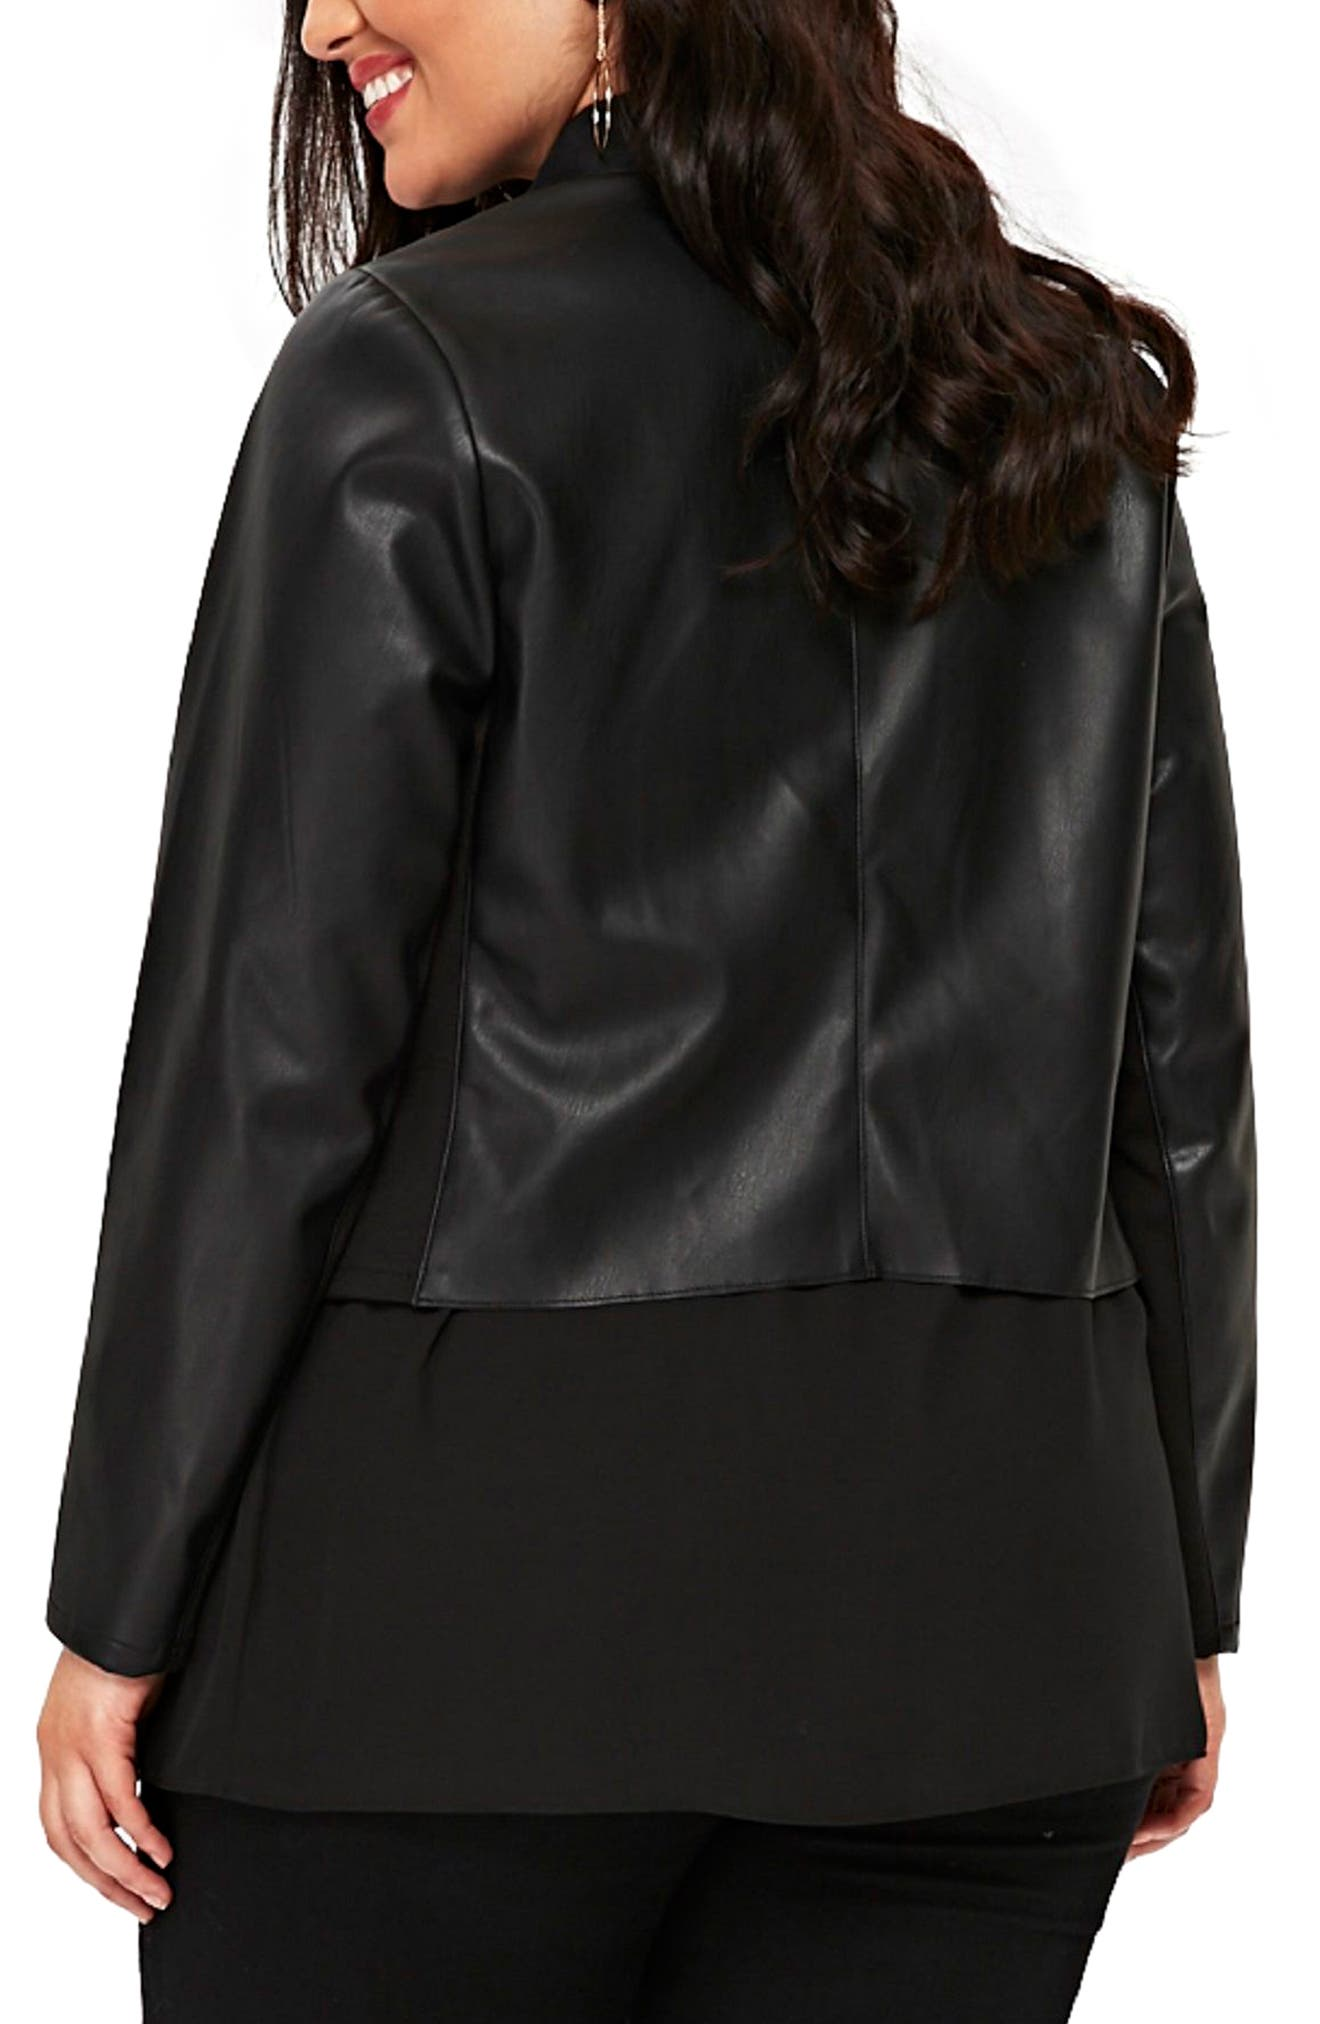 Drape Lapel Faux Leather Jacket,                             Alternate thumbnail 2, color,                             Black